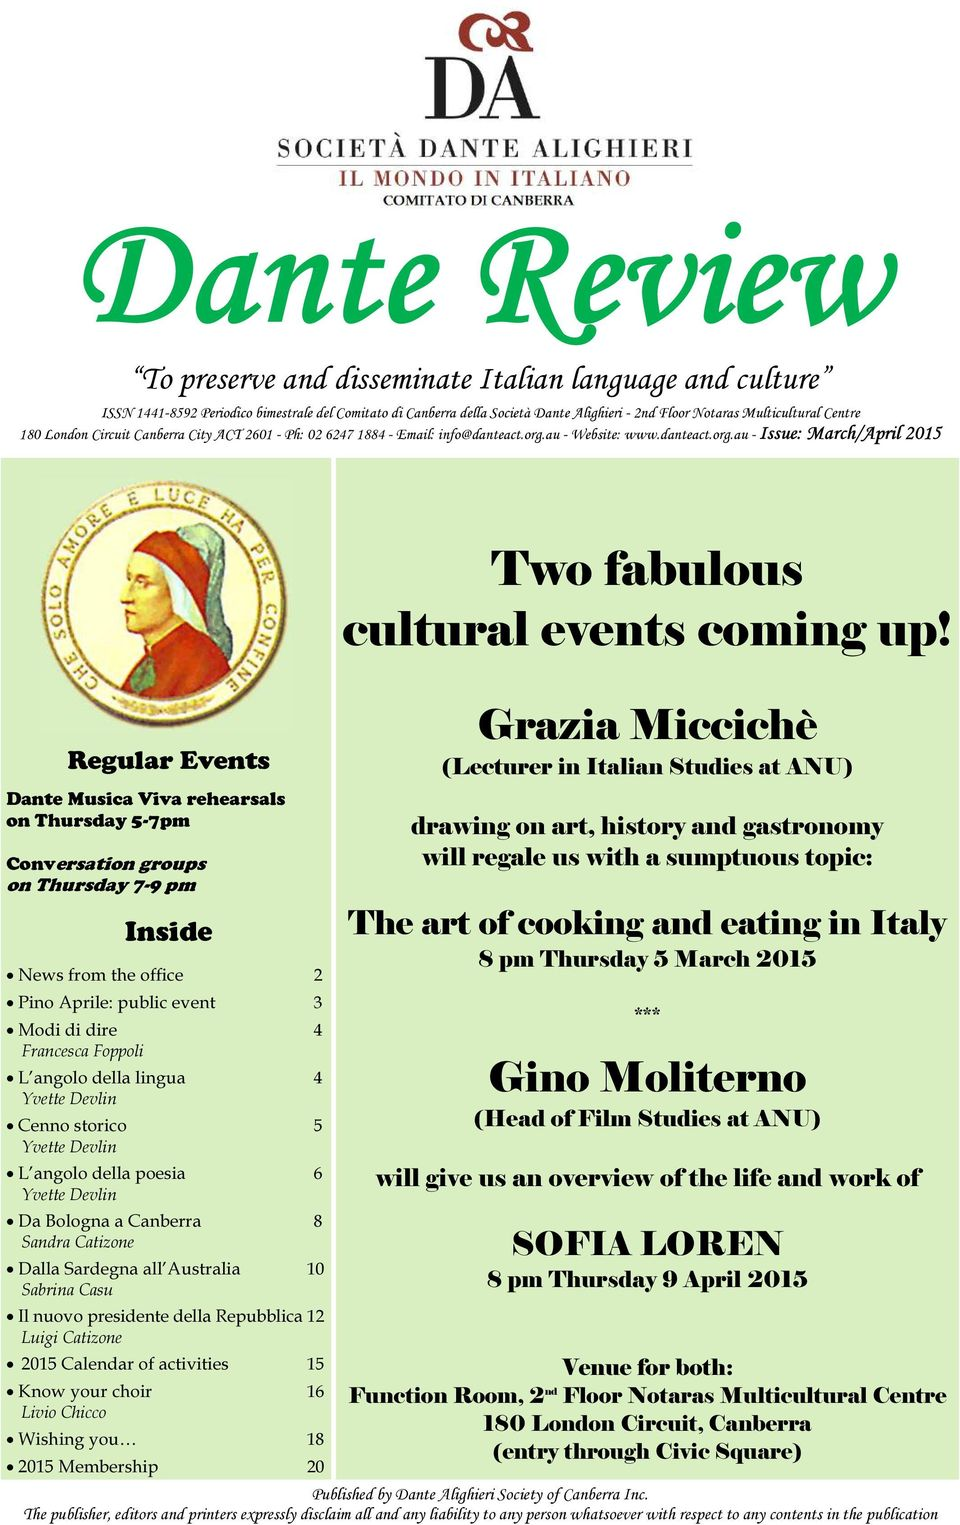 Regular Events Grazia Miccichè (Lecturer in Italian Studies at ANU) Dante Musica Viva rehearsals on Thursday 5-7pm Conversation groups on Thursday 7-9 pm Inside News from the office 2 Pino Aprile: